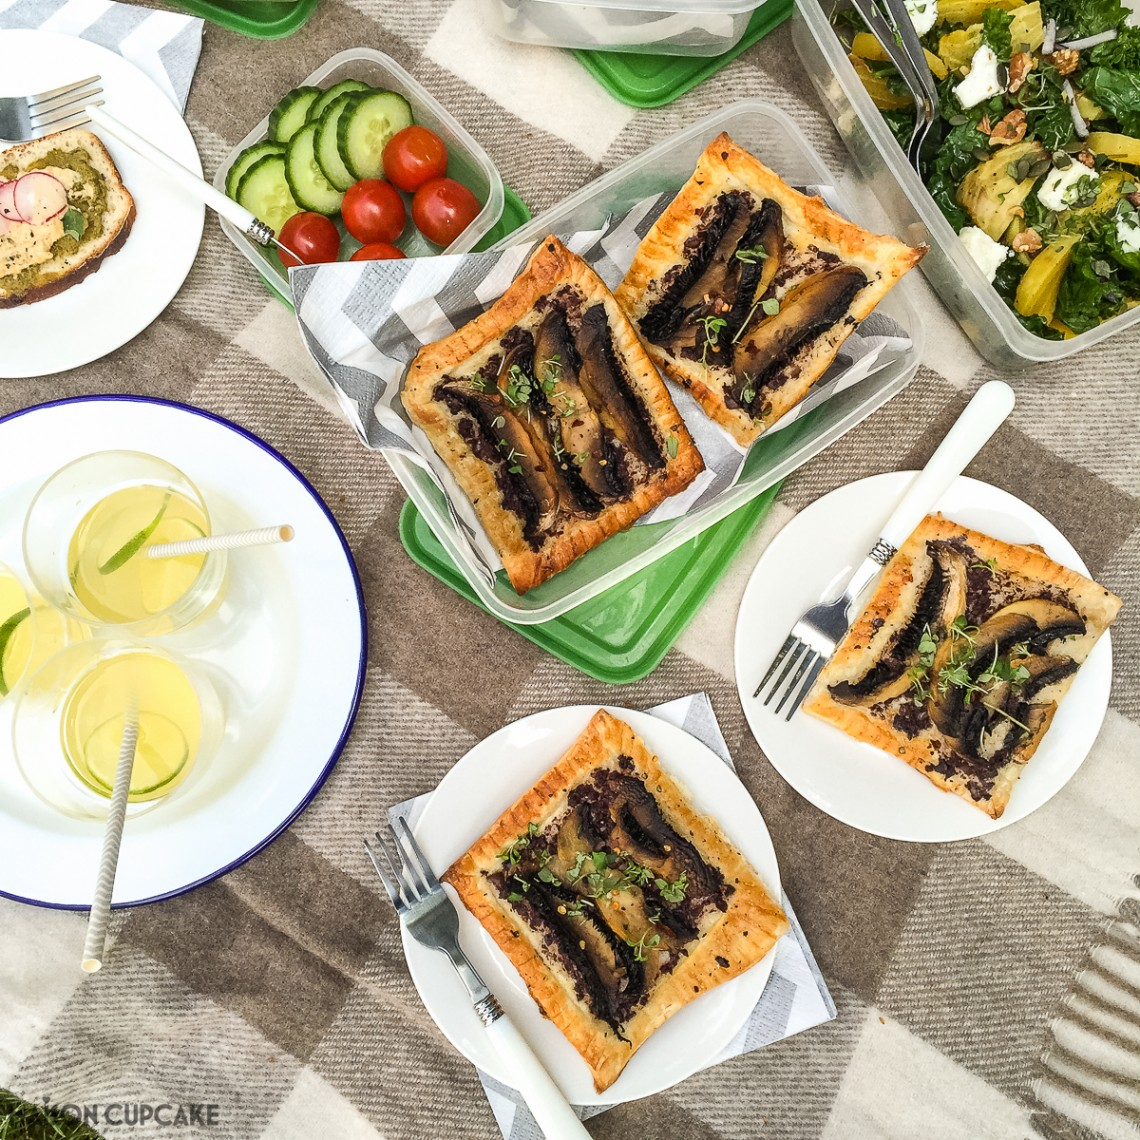 Simple but tasty portobello mushroom puff pastry tarts recipe with black olive tapenade - brilliant savoury pastry for picnics, packed lunches or light suppers